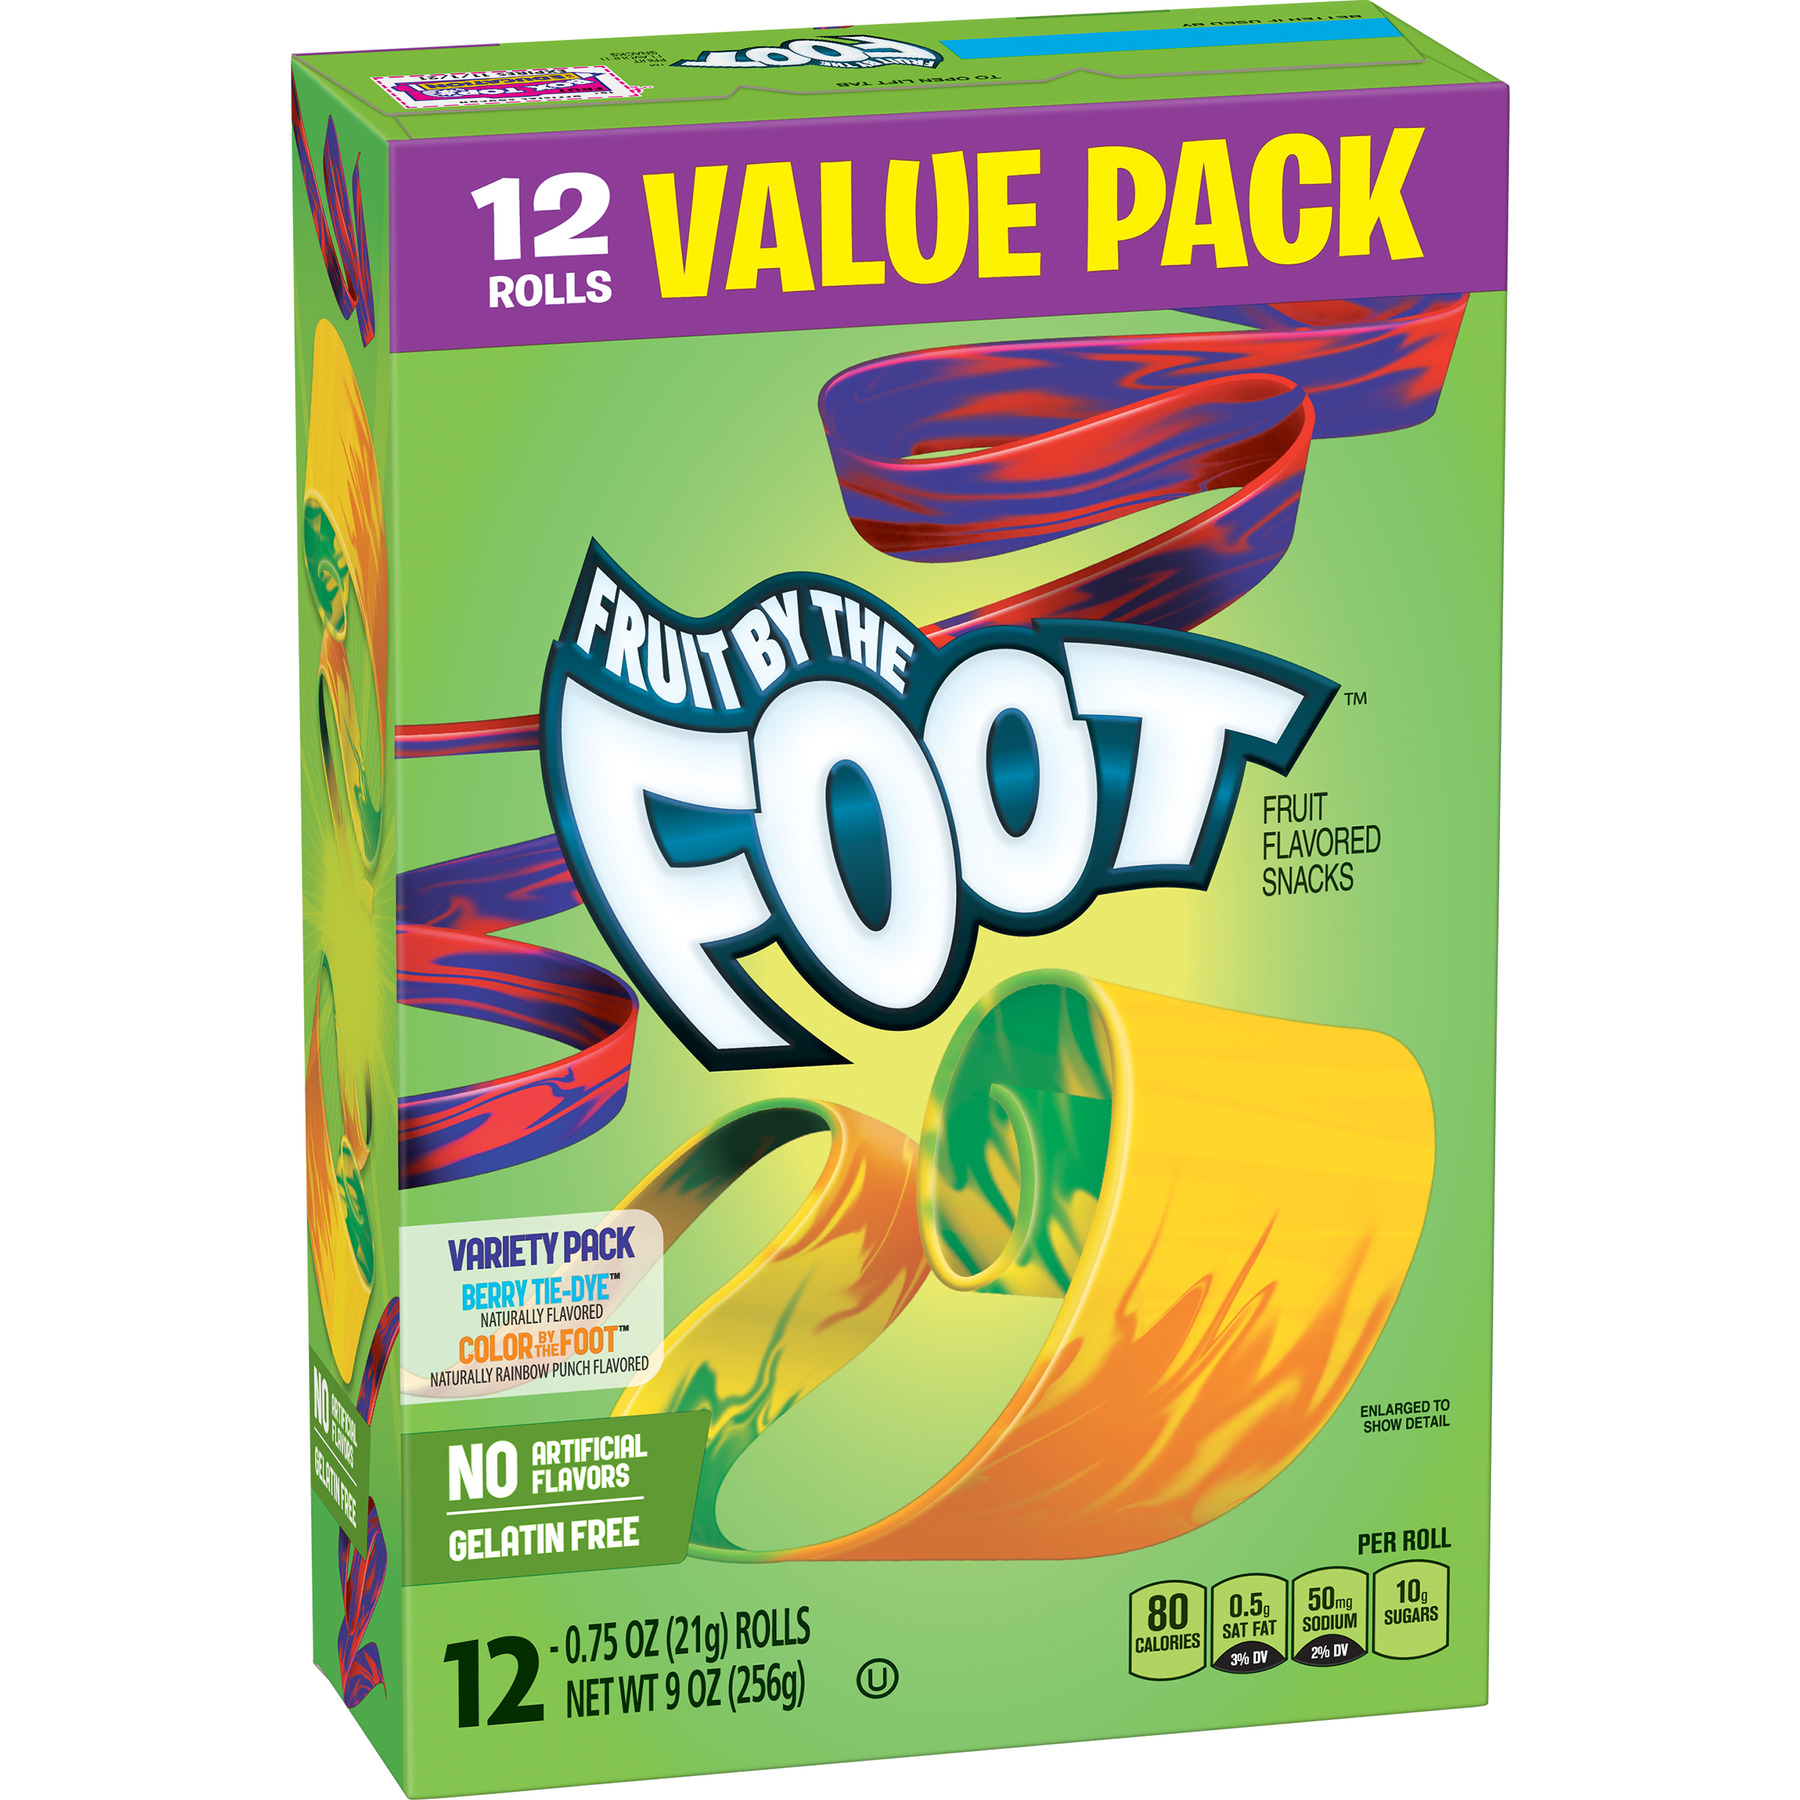 Betty Crocker Fruit Snacks, Fruit by the Foot, Variety Snack Pack, 12 Rolls, 0.75 oz Each